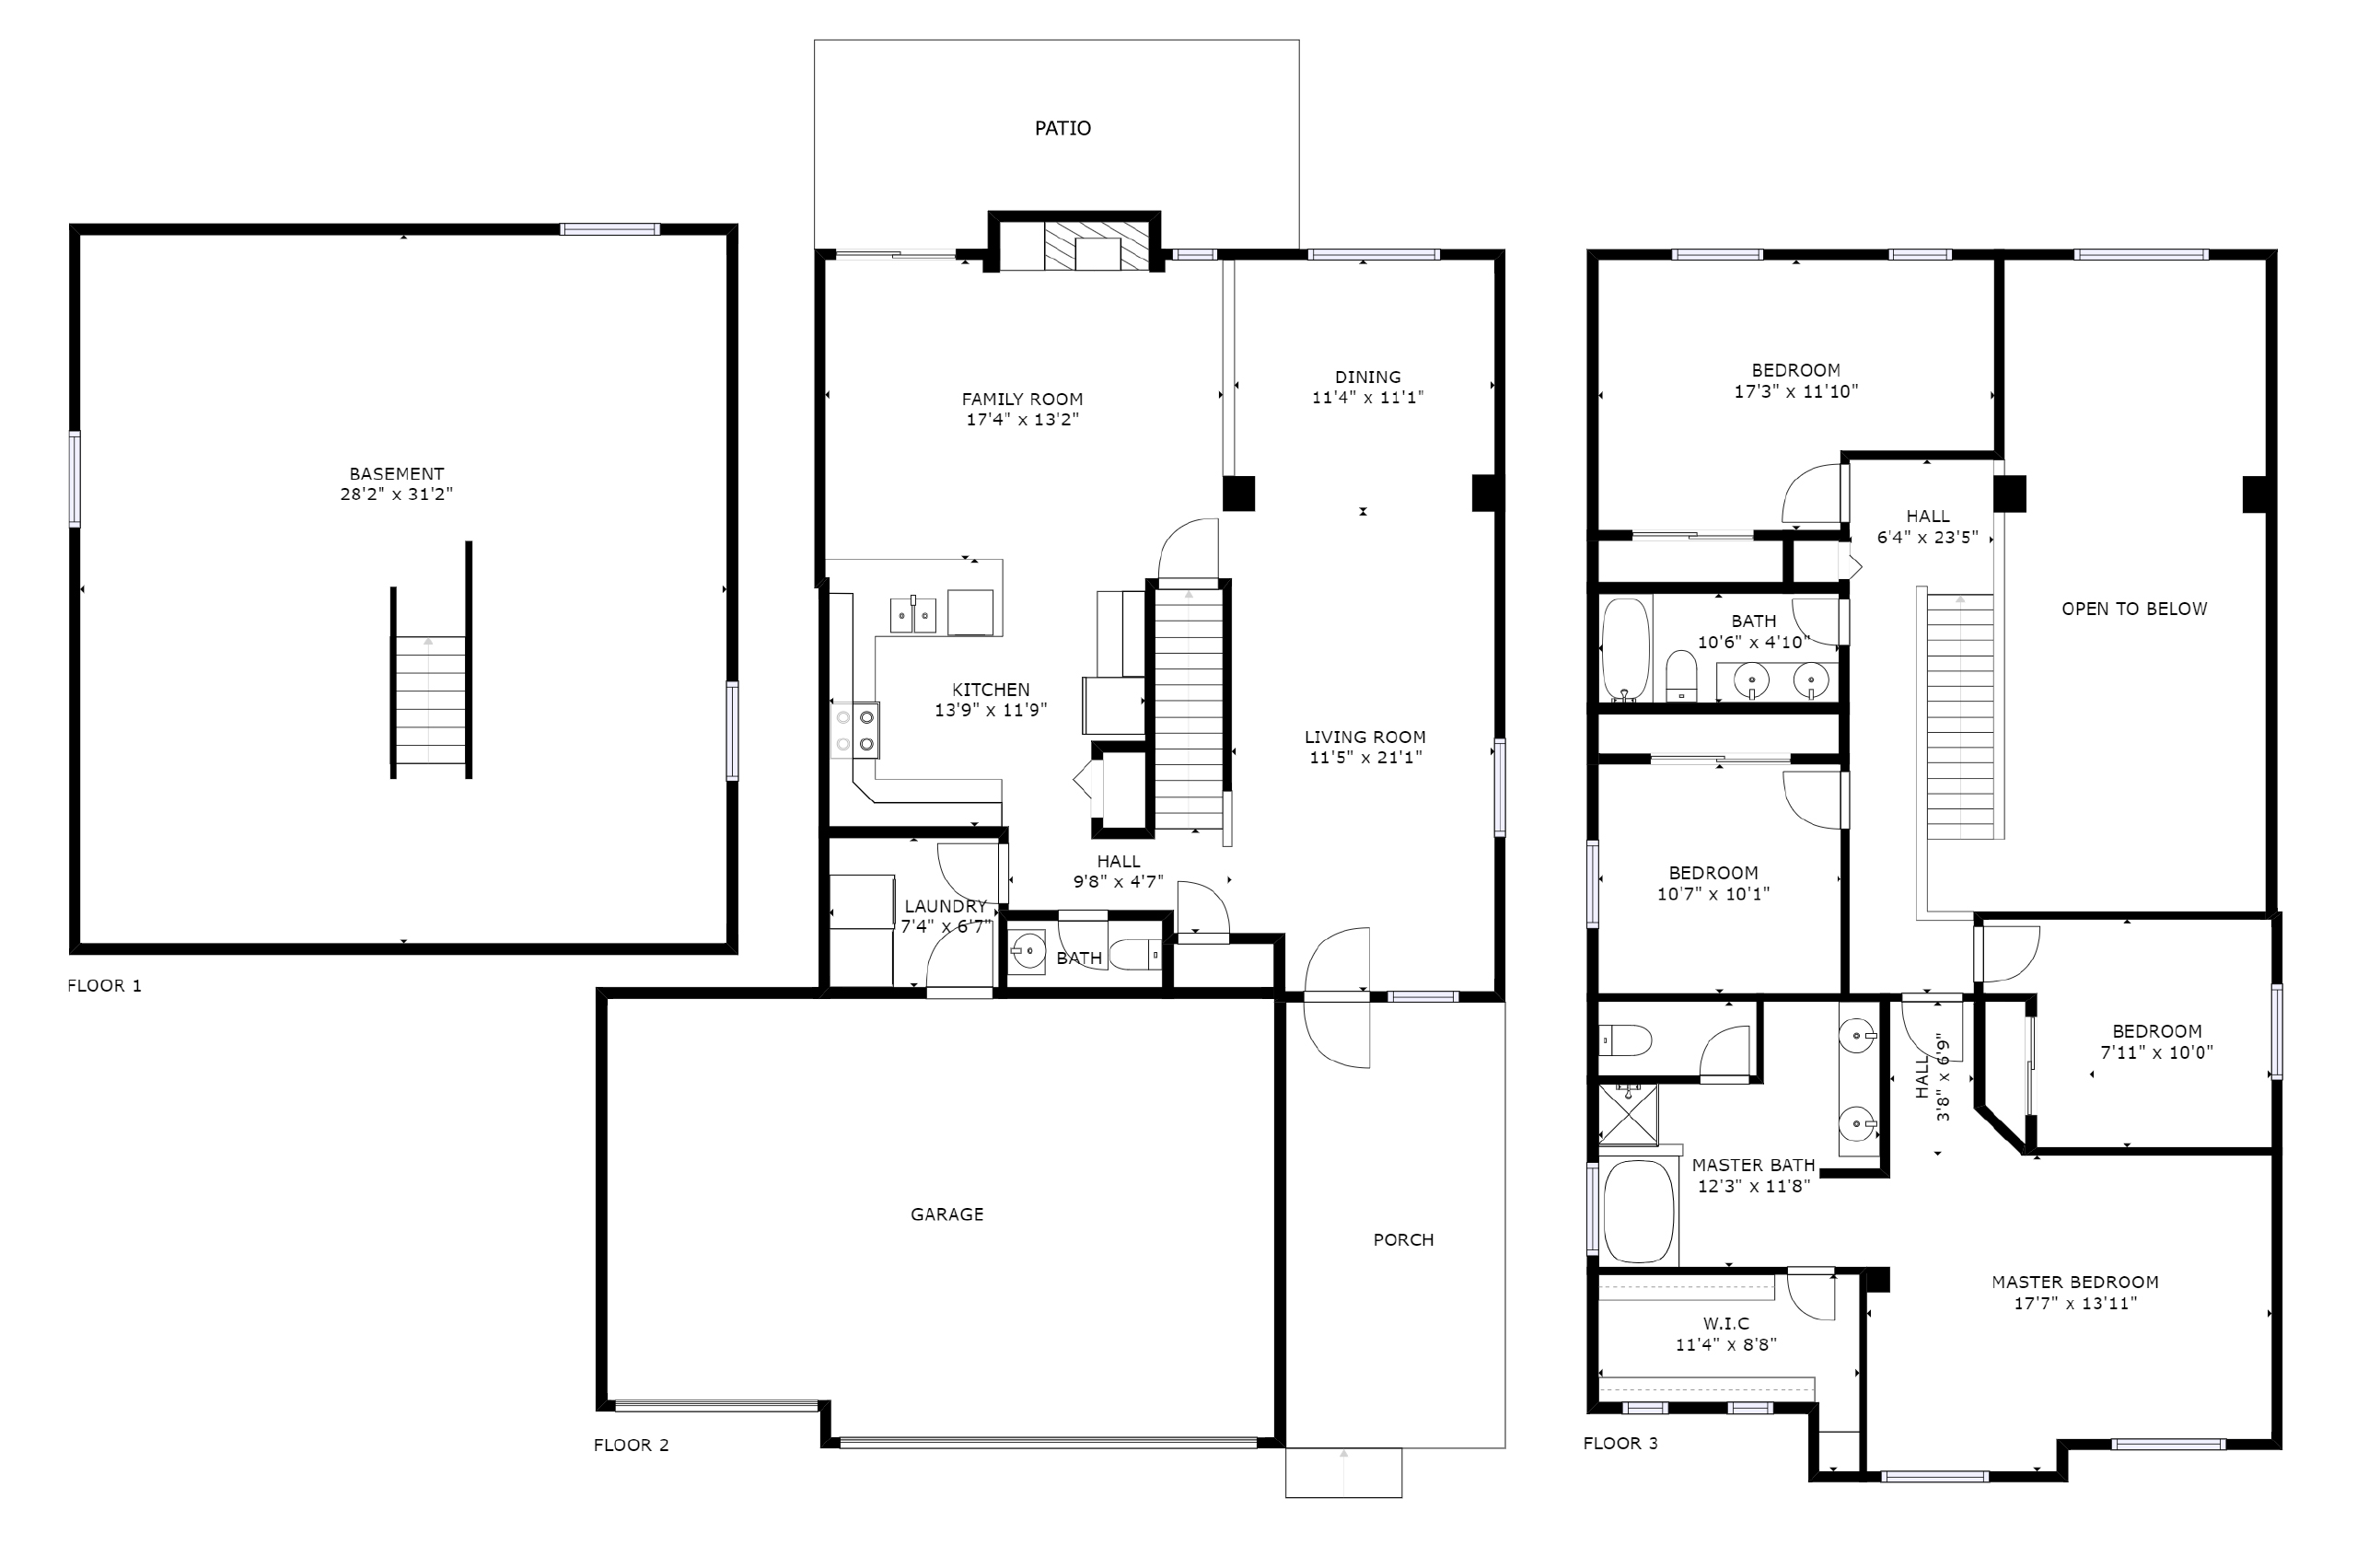 REAL ESTATE LISTING: 10502 Falcon St Firestone Floor Plan